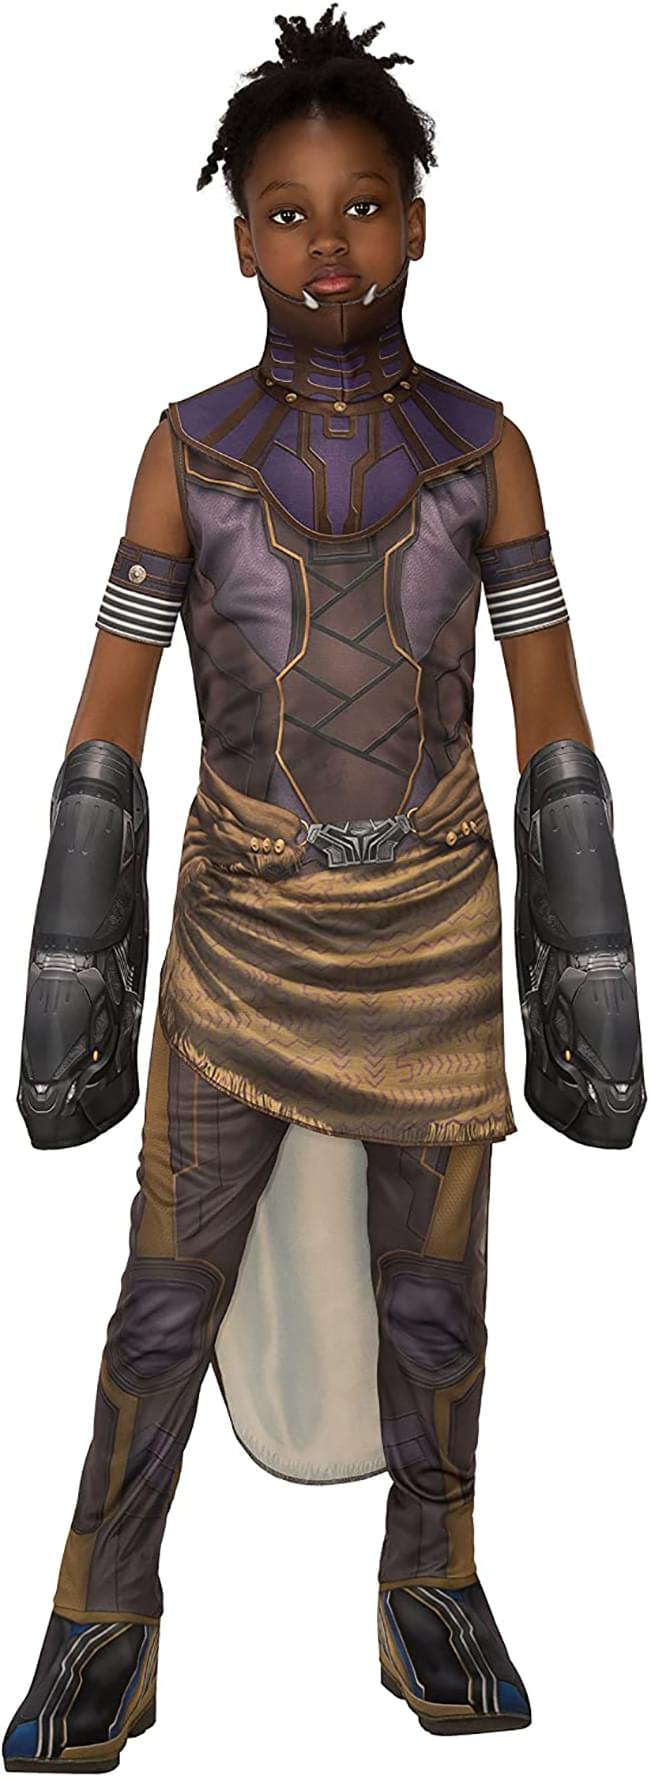 Marvel Black Panther Movie Deluxe Shuri Child Costume